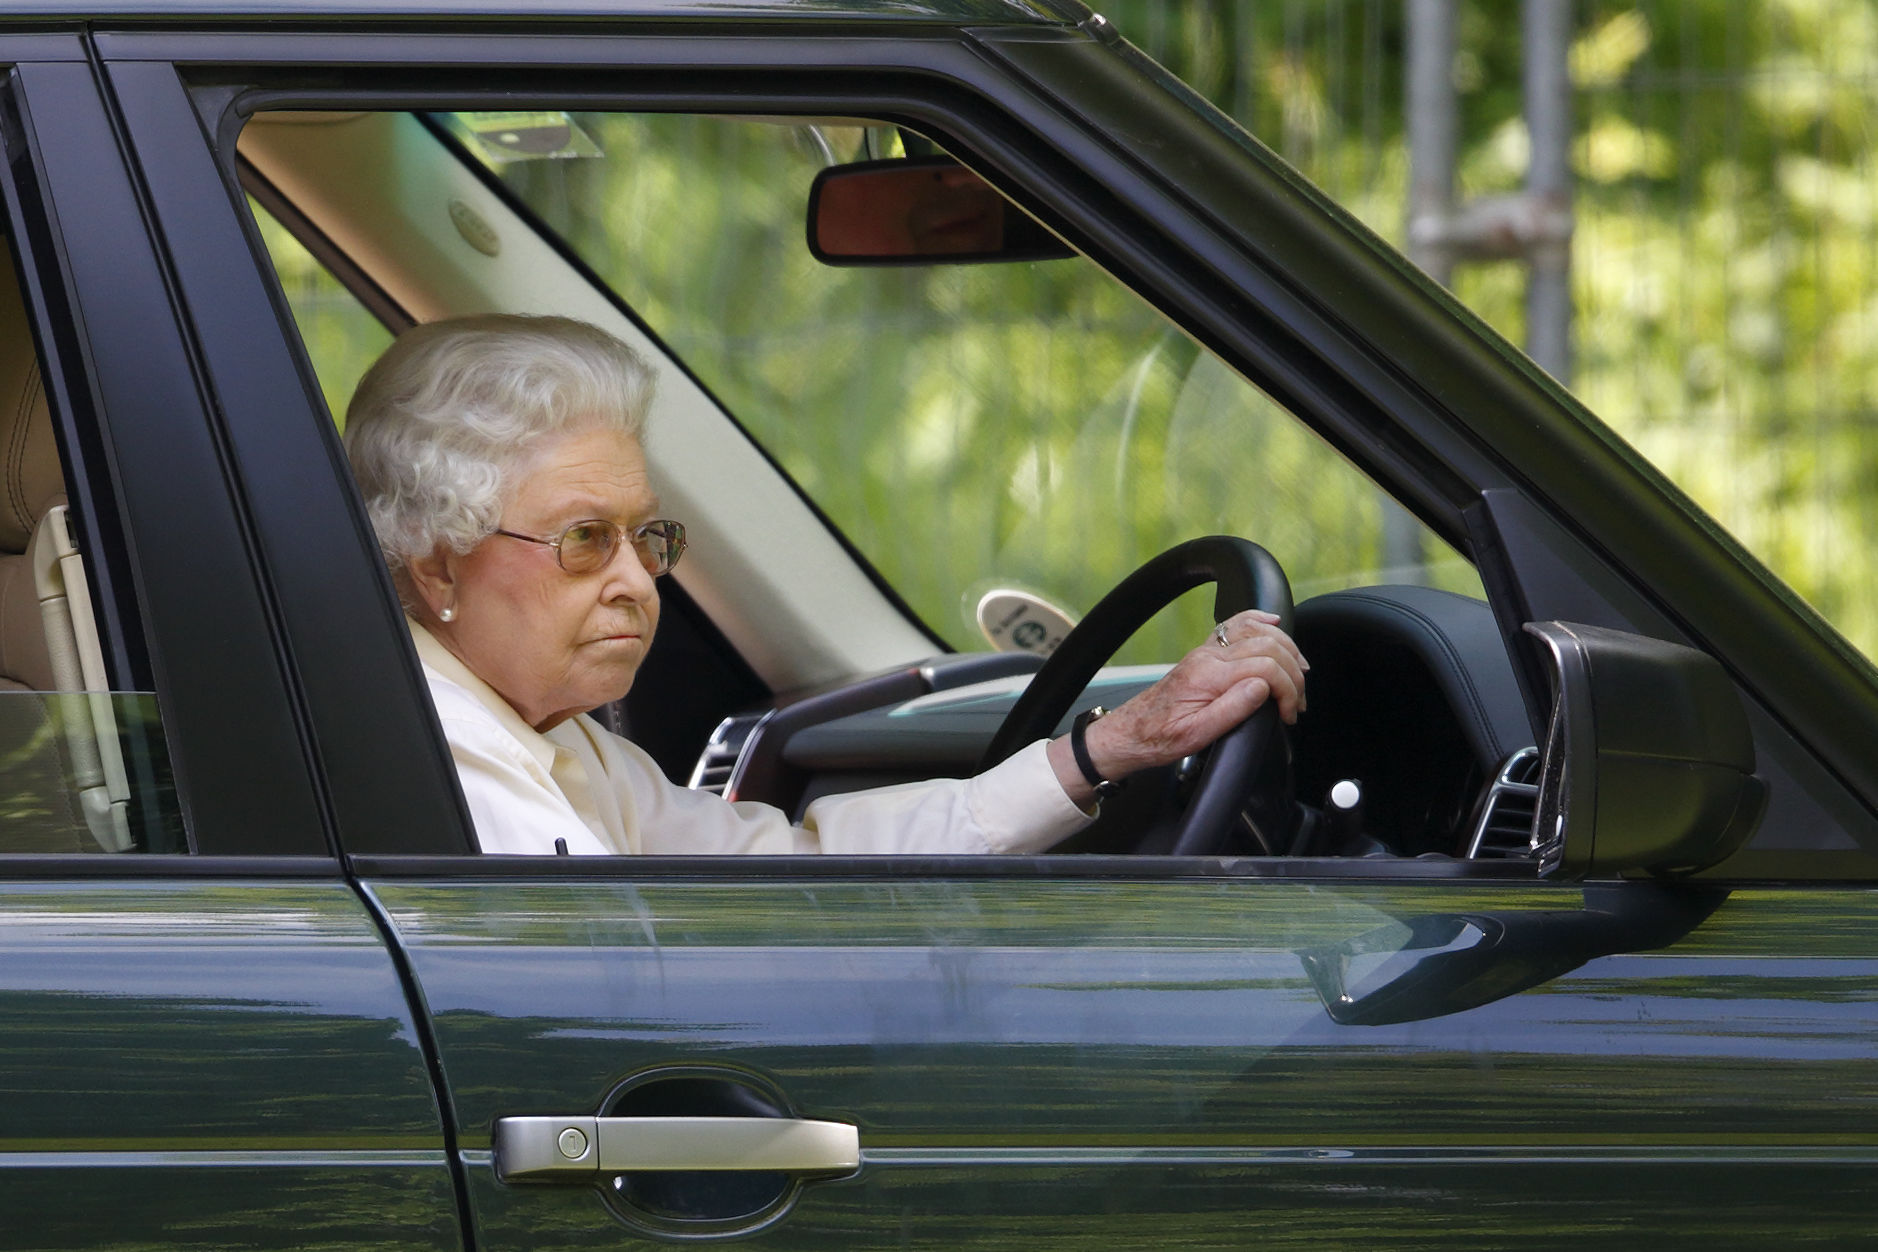 The Reason Members of the Royal Family Often Don't Wear Seat Belts